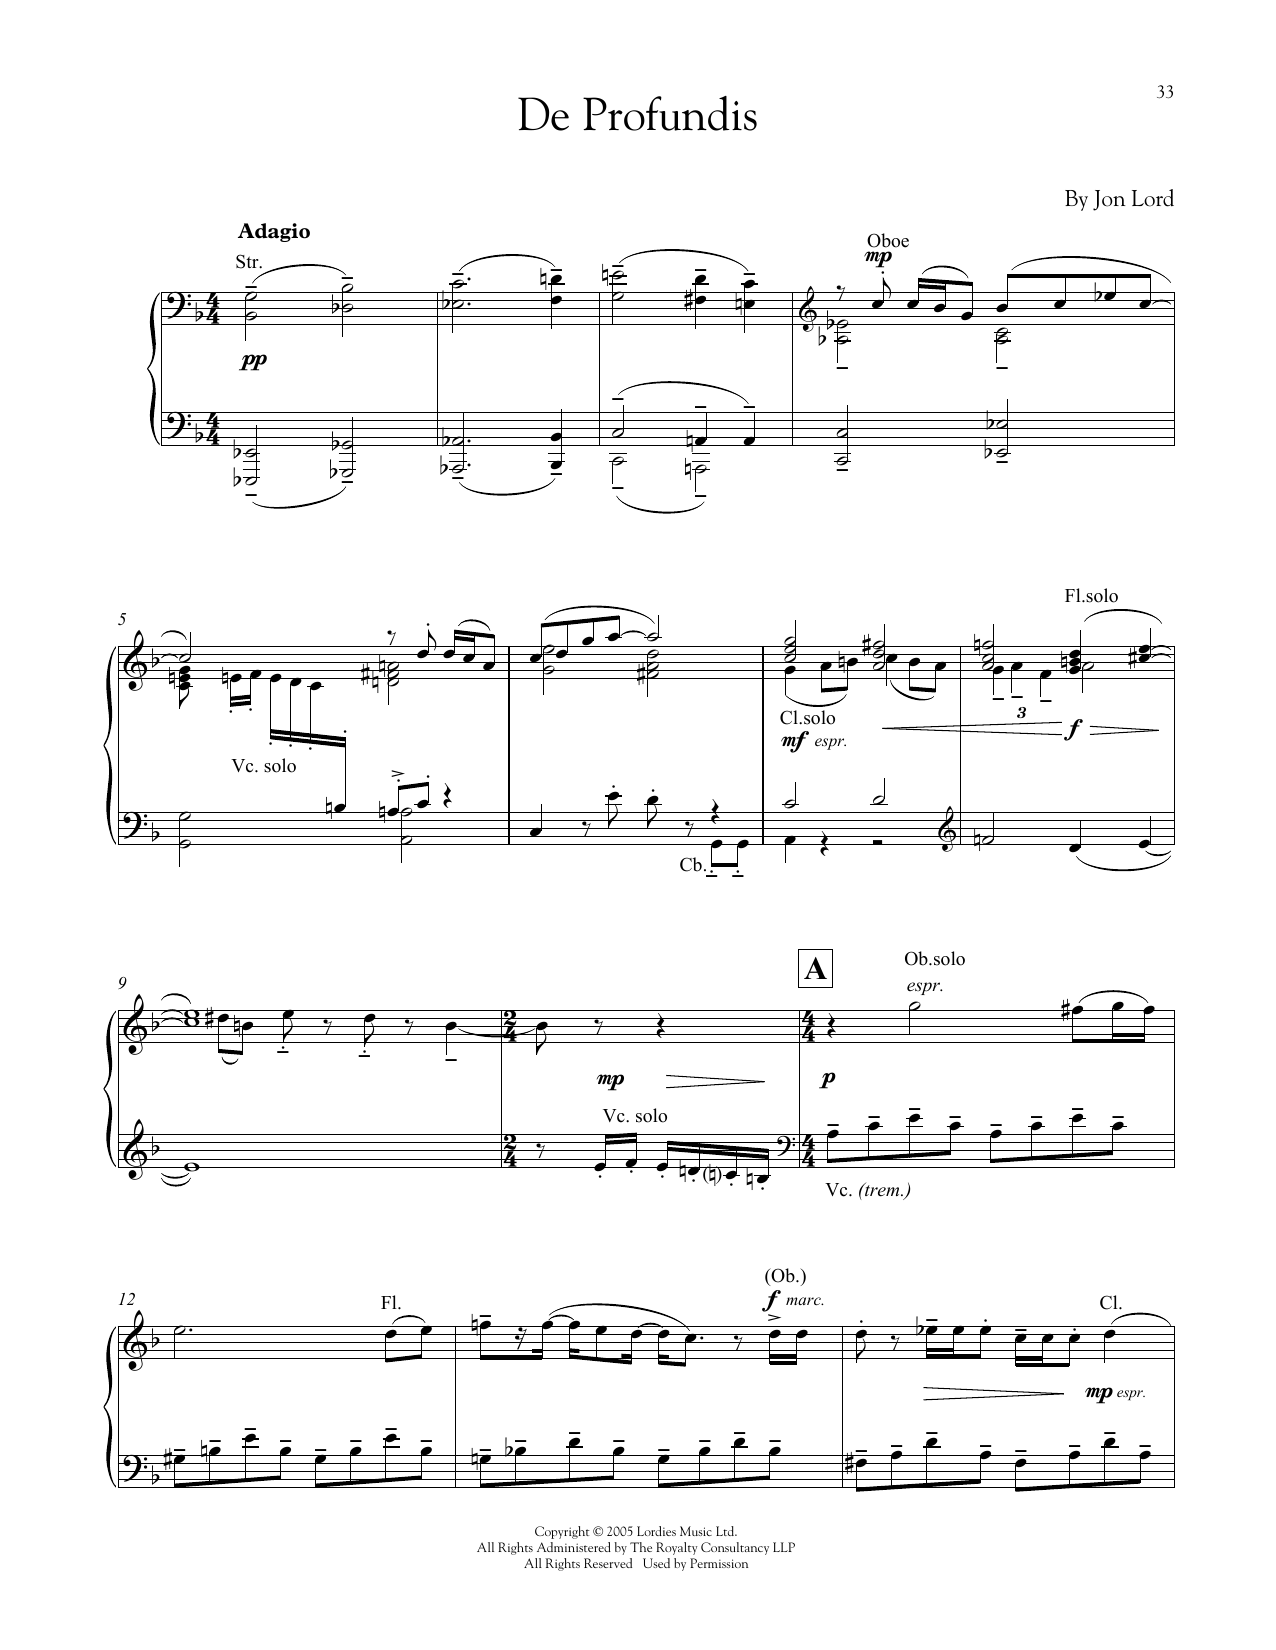 Jon Lord De Profundis sheet music notes and chords. Download Printable PDF.